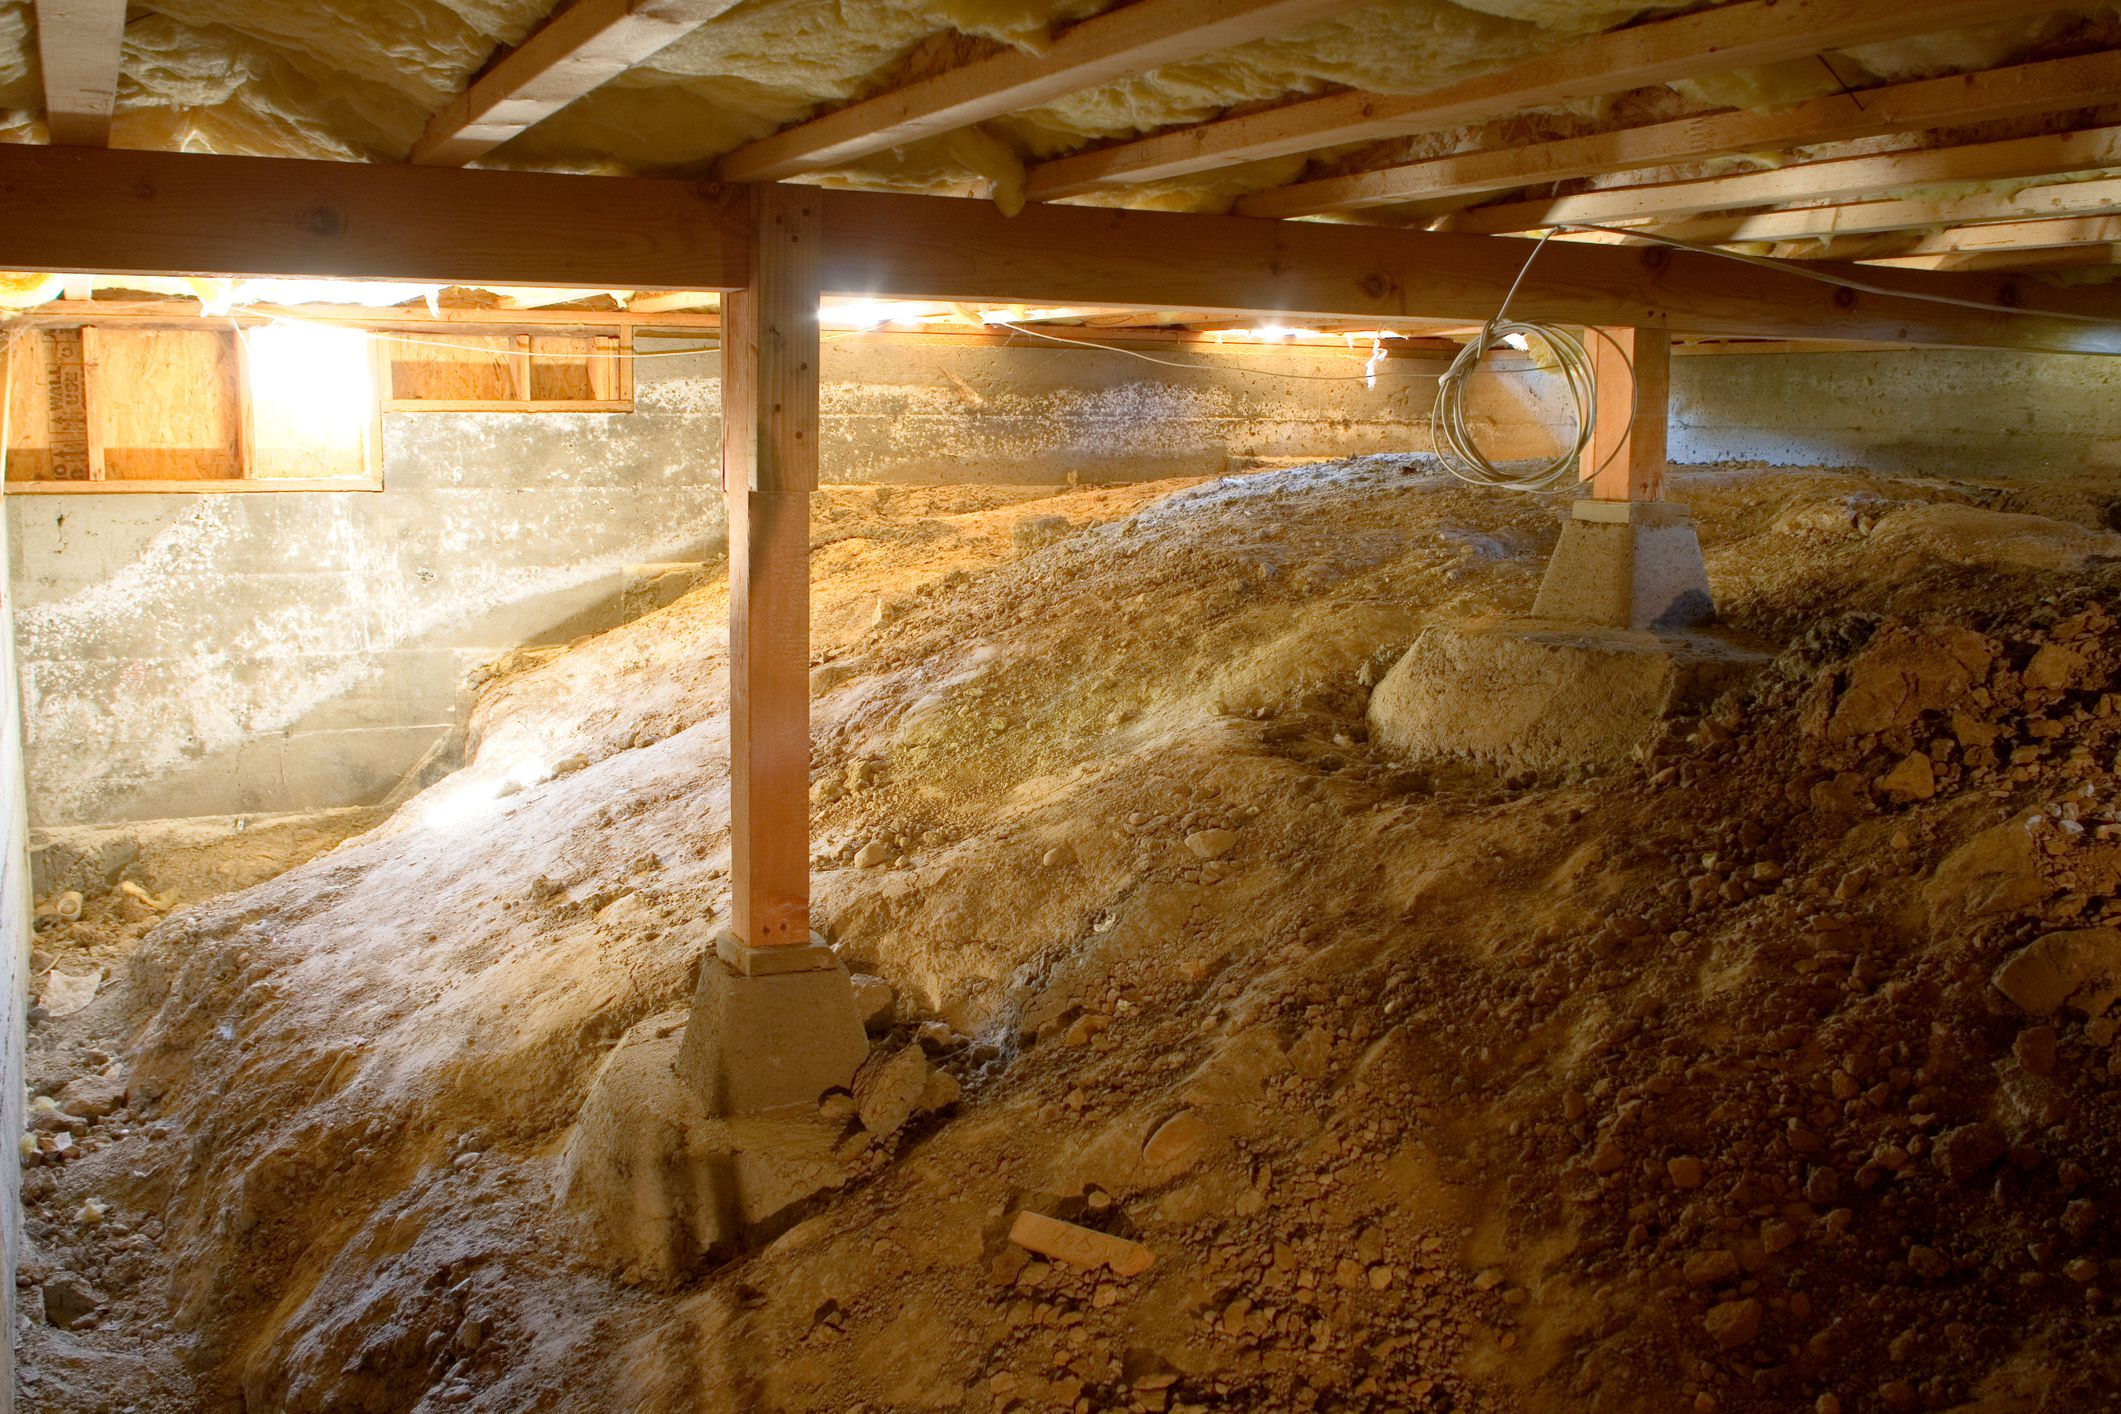 Water In Crawl Space Sources And Removal